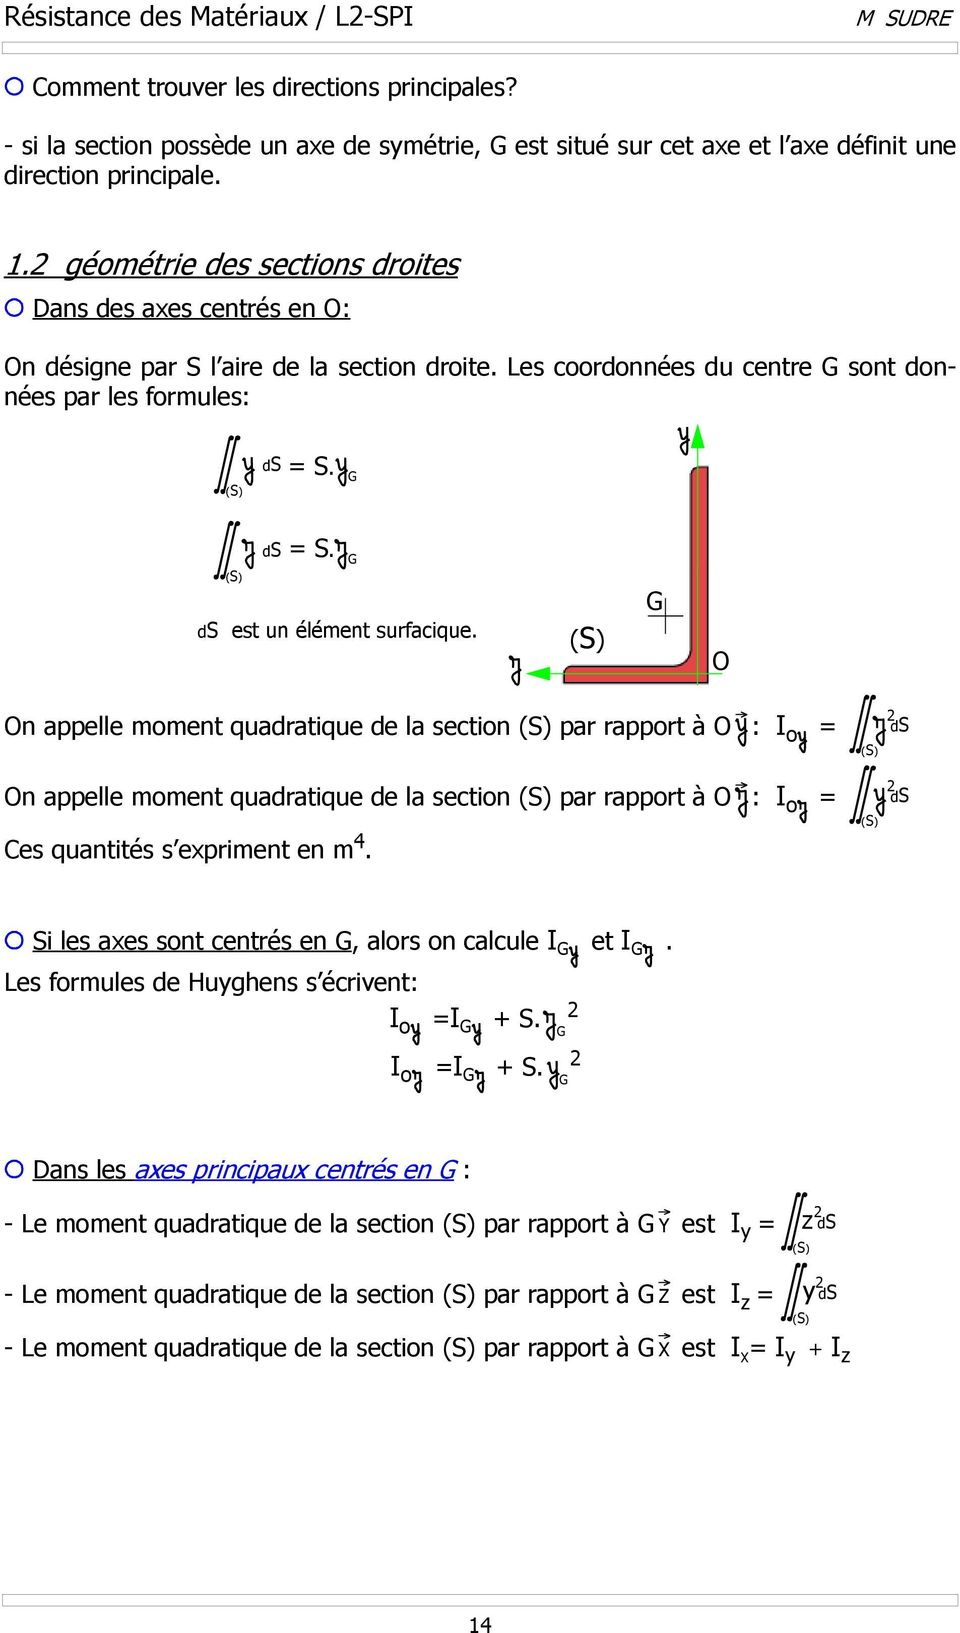 n appelle moment quadratique de la section par rapport à : I o = n appelle moment quadratique de la section par rapport à : I o = es quantités s epriment en m 4.